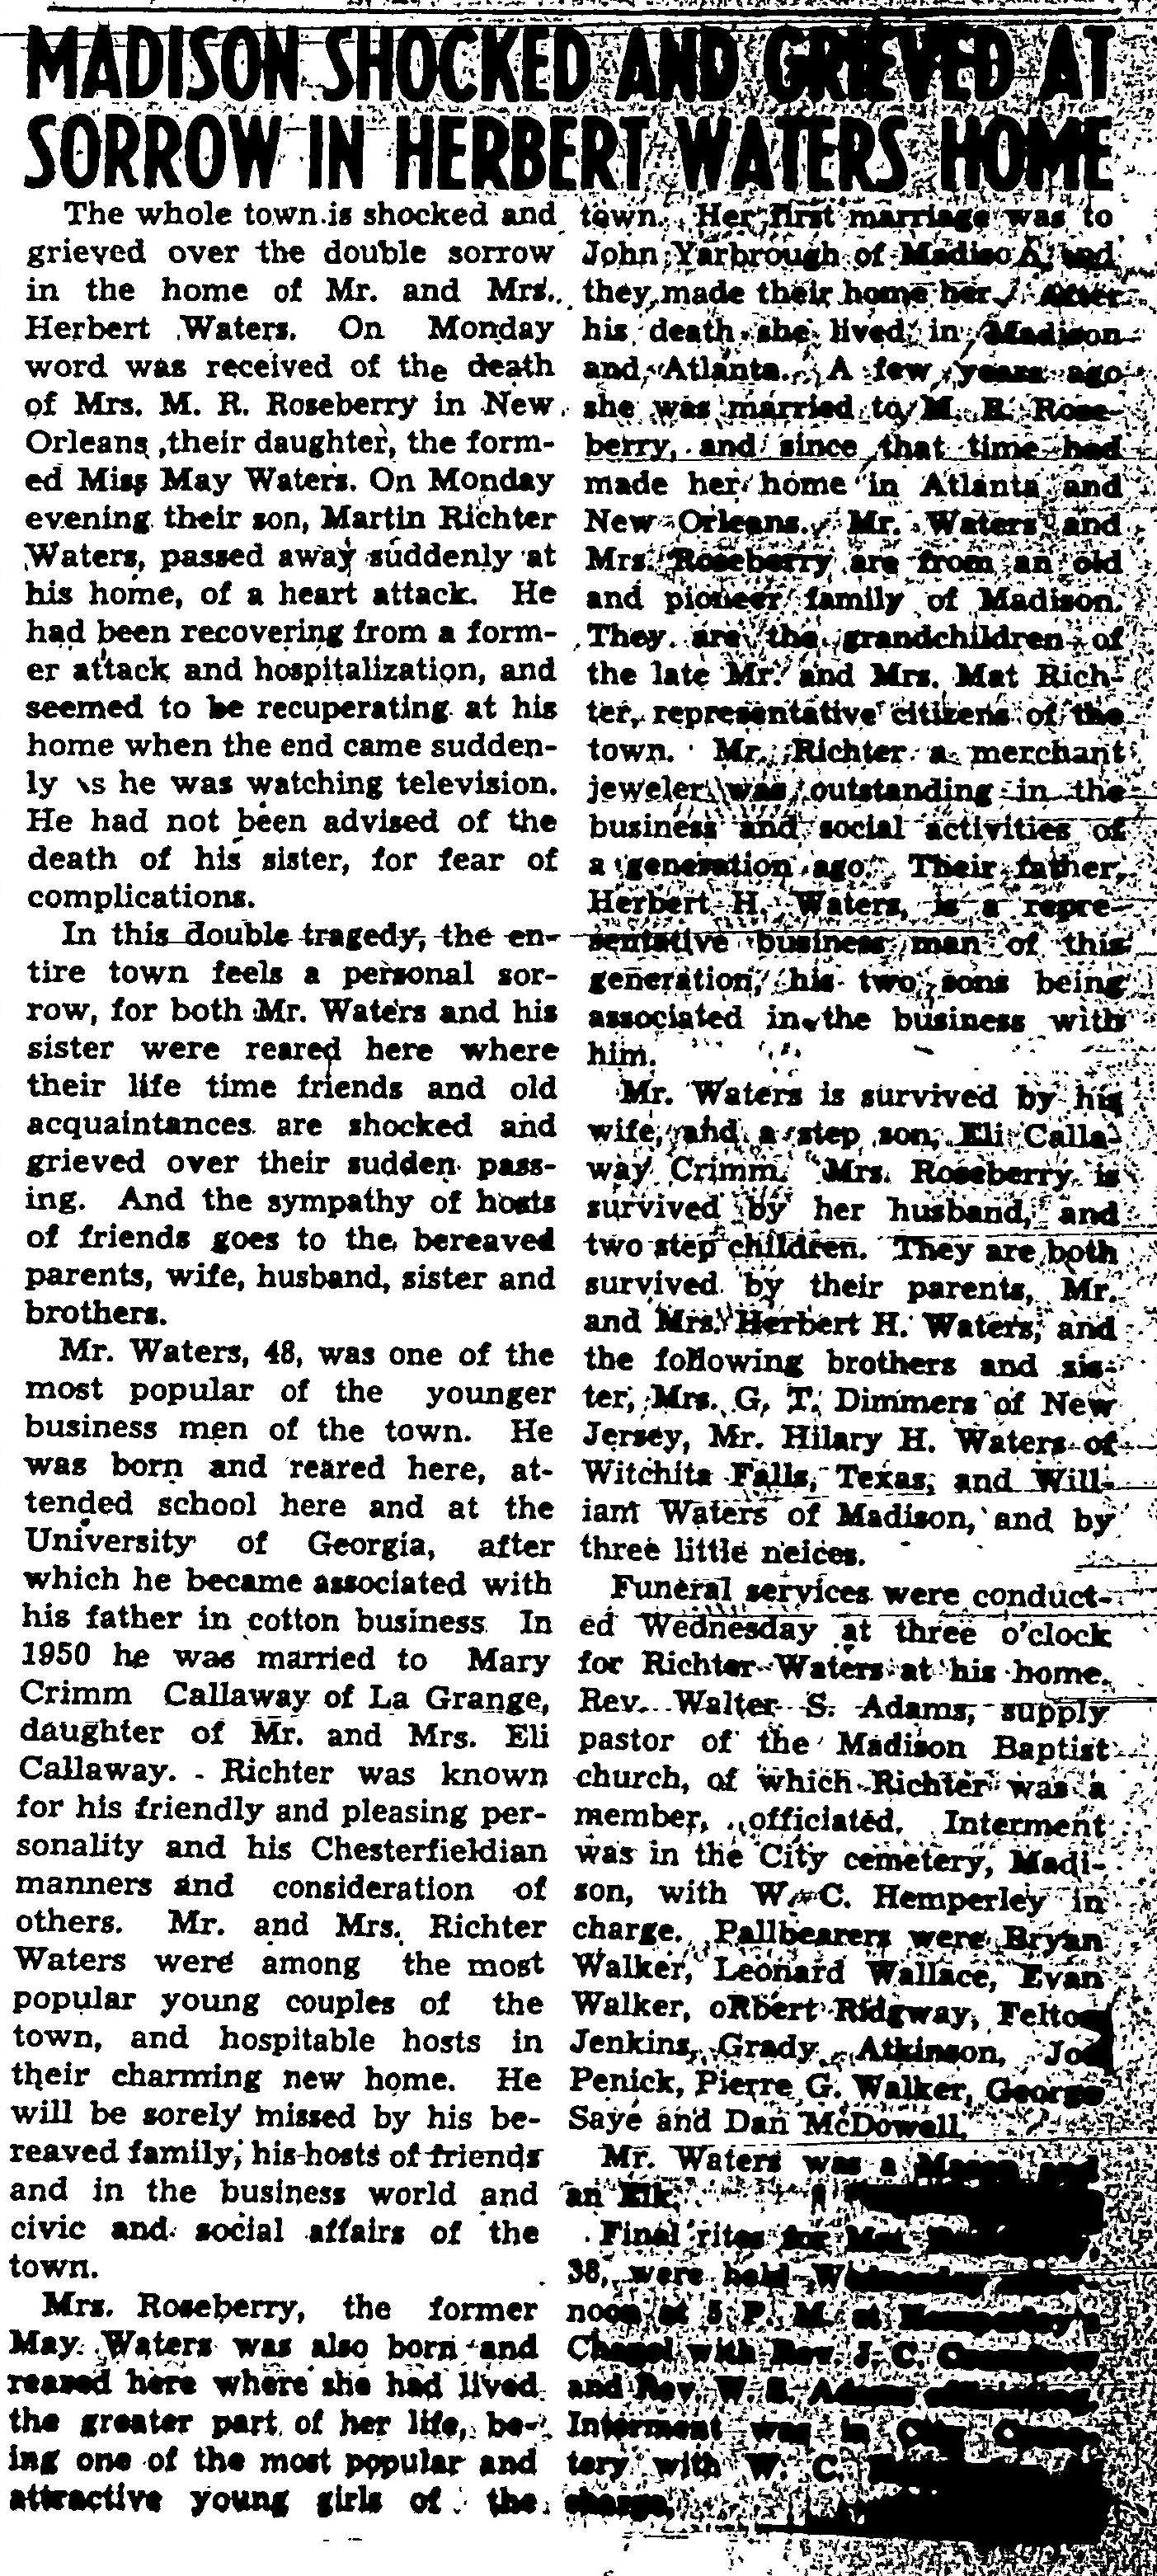 roseberry_maewaters_1953-obituary-mad.jp